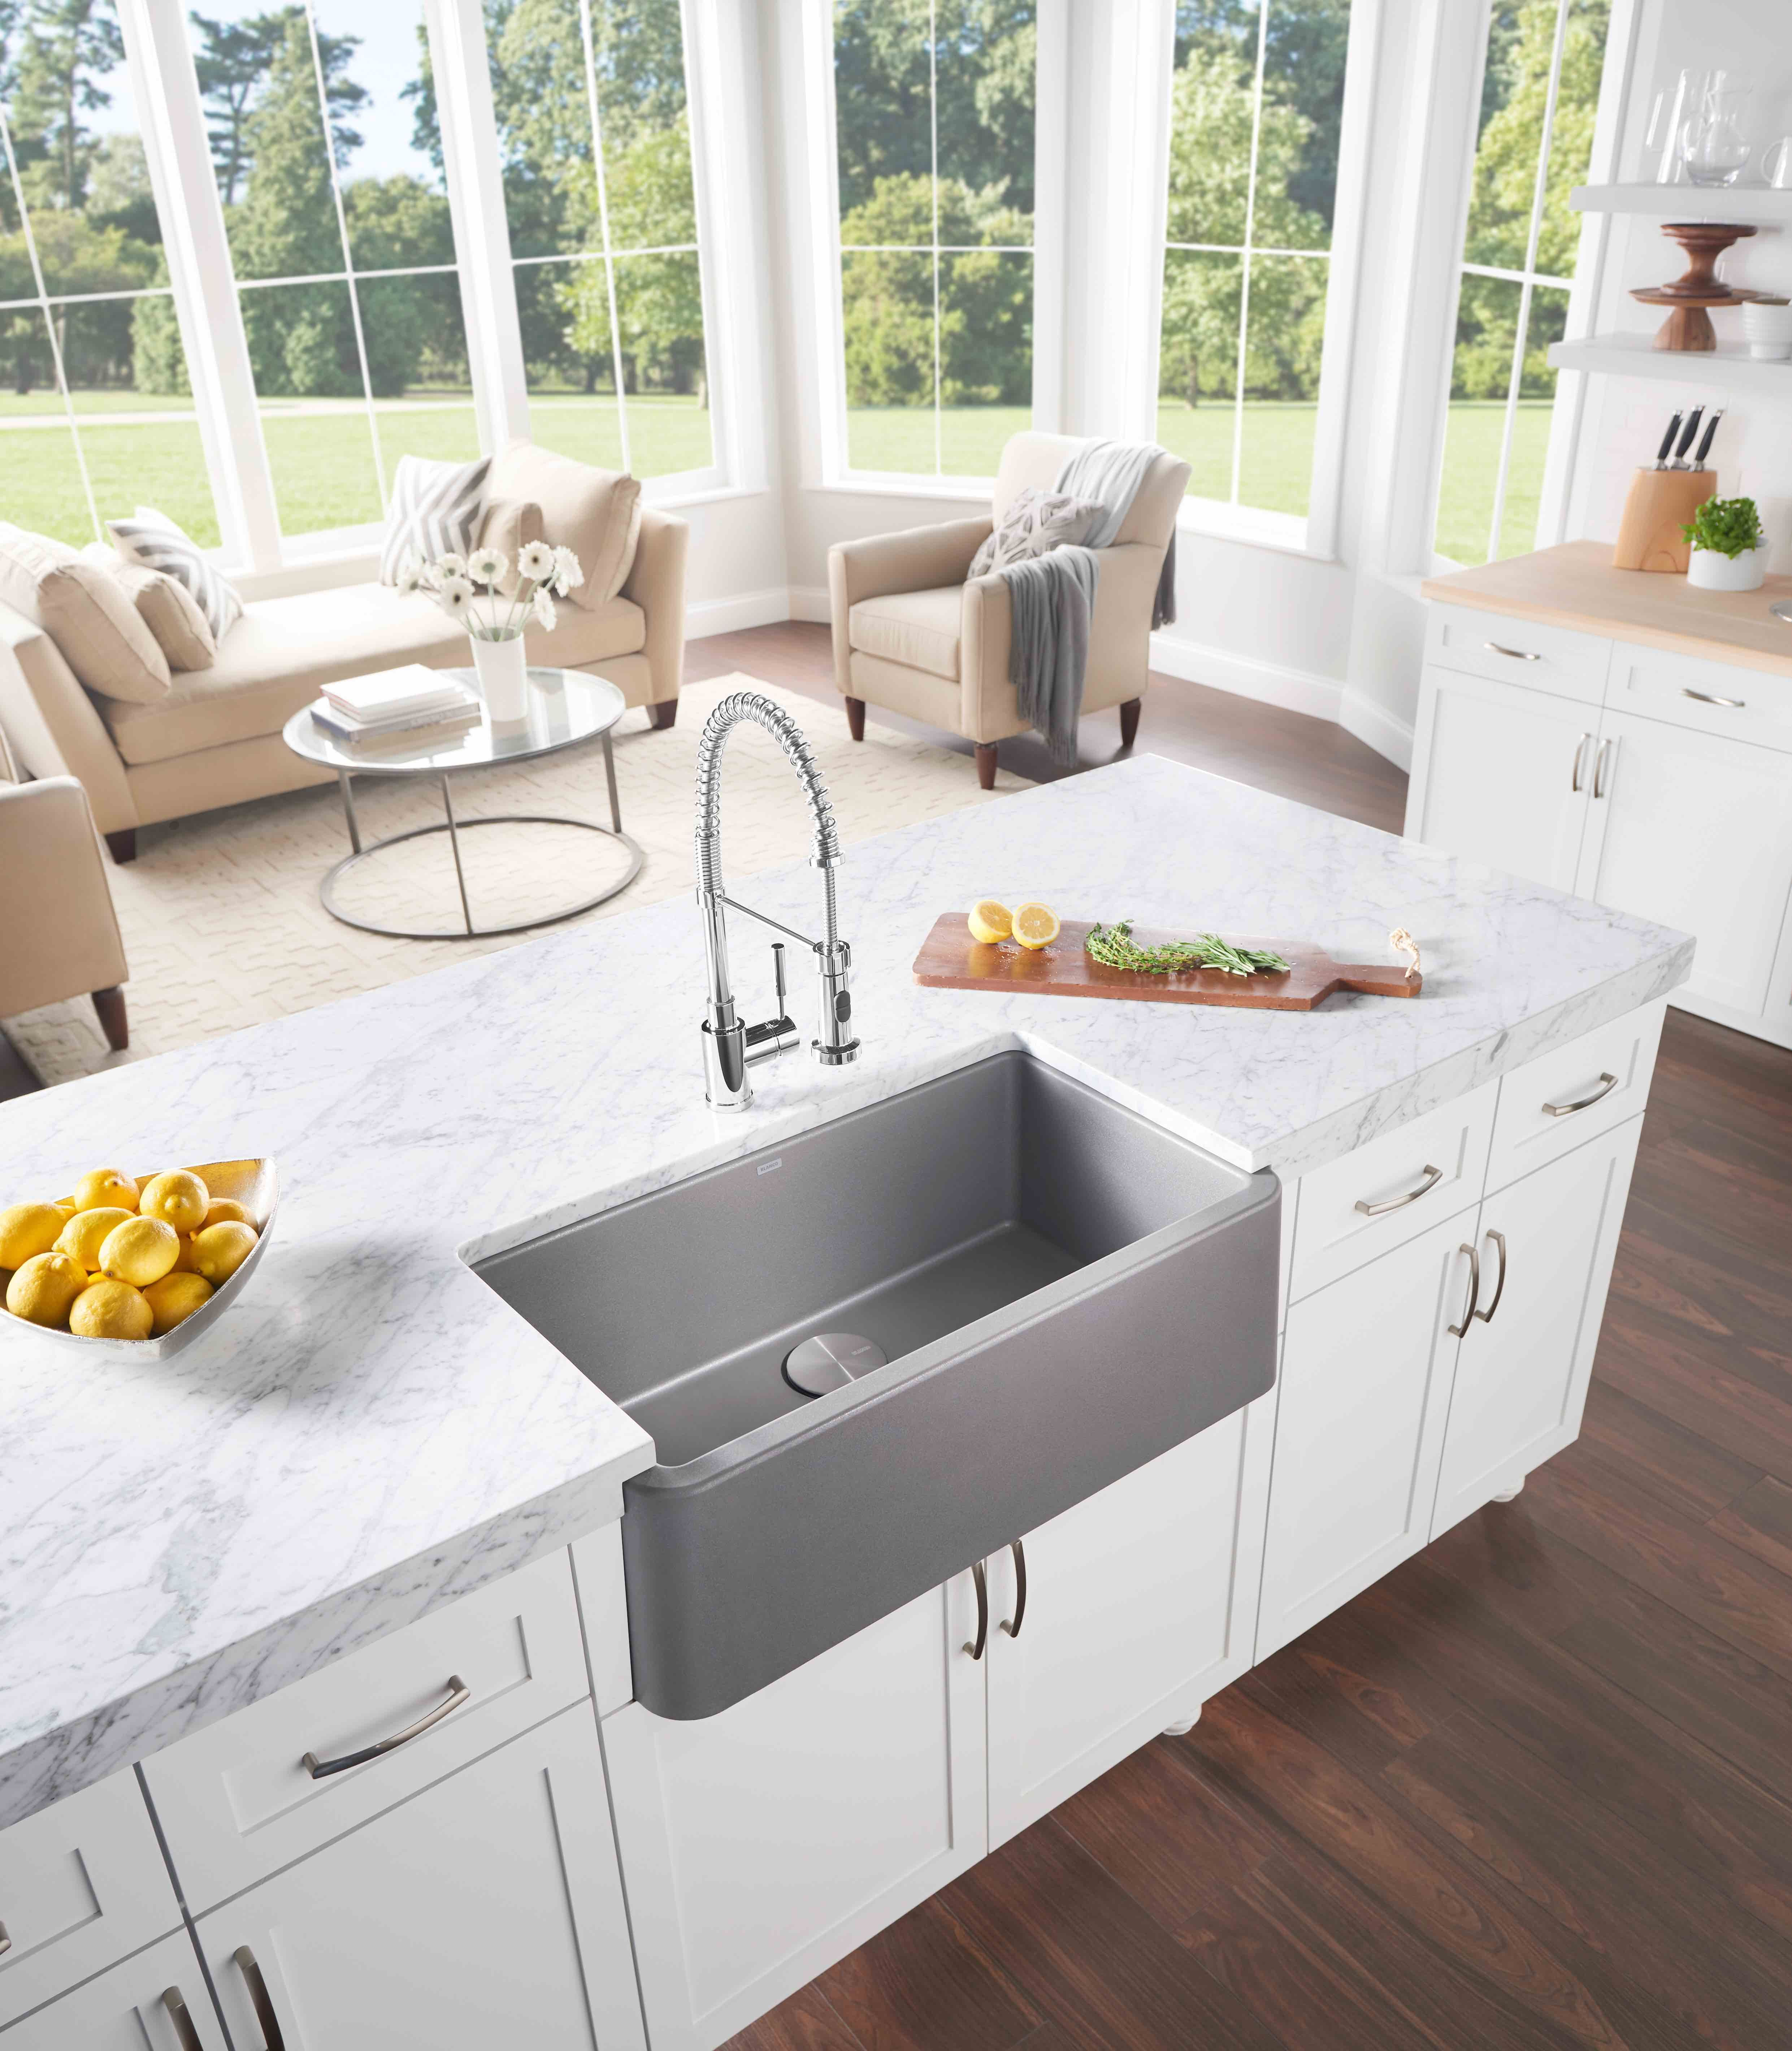 Blanco Farmhouse Sink Reviews Farmhouse Sink In Gally Kitchen Preferred Home Design